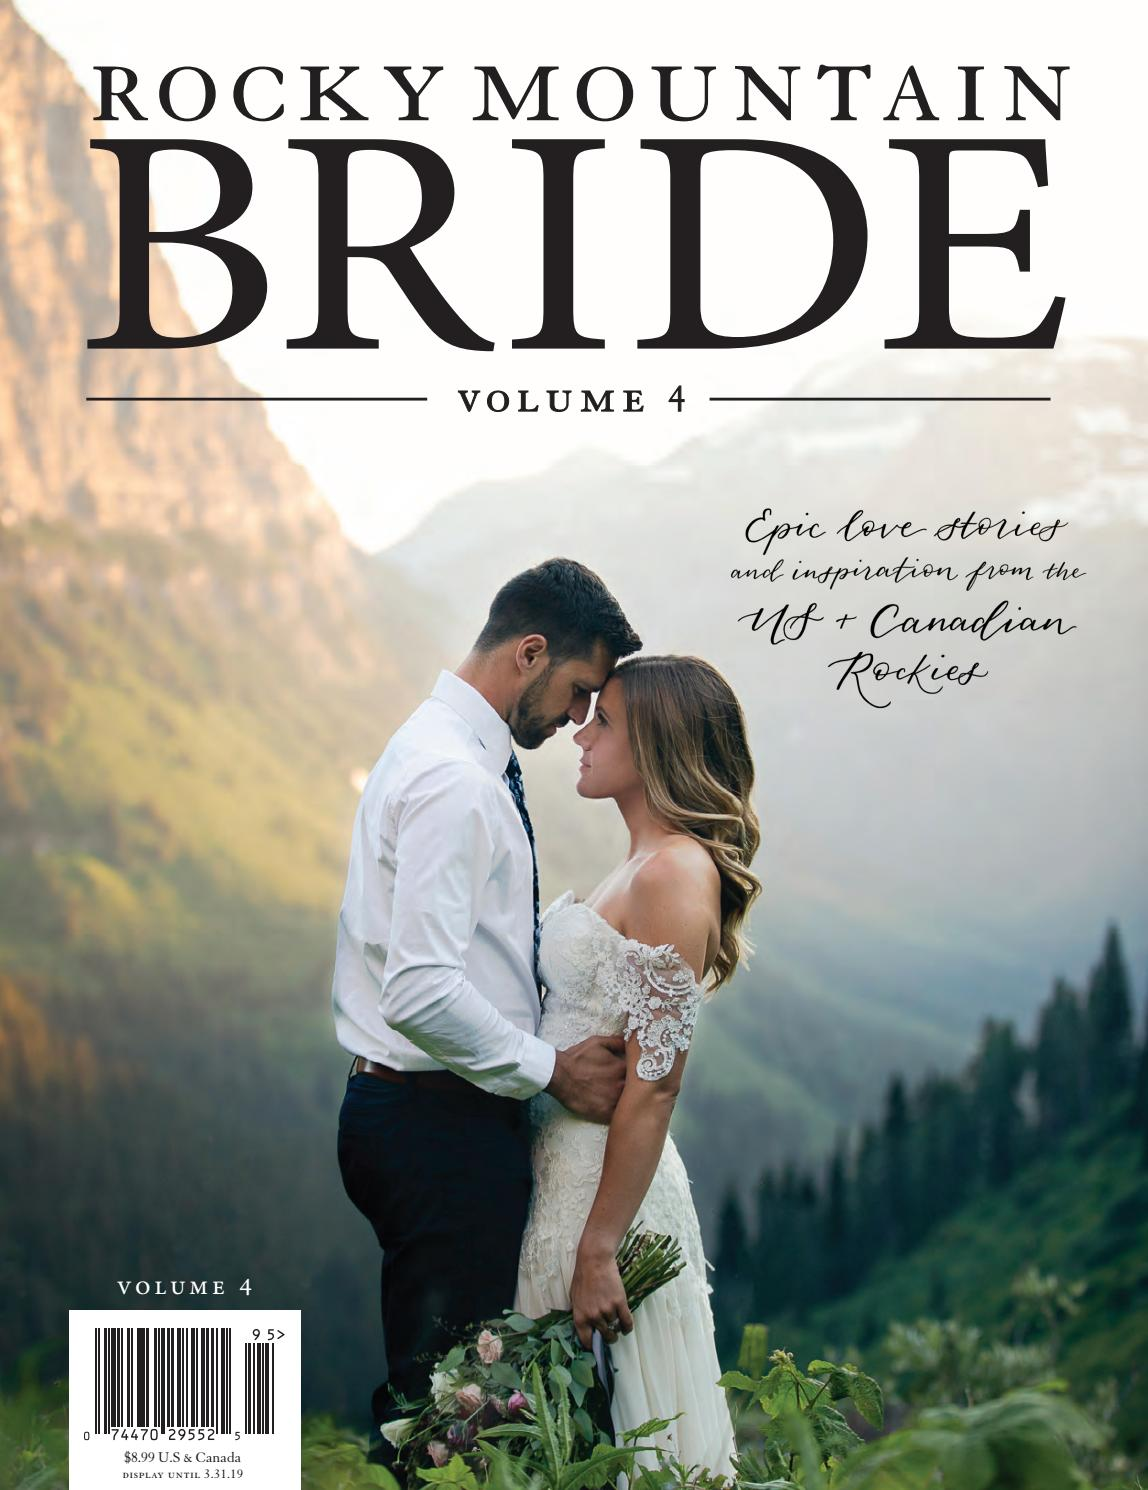 hight resolution of rocky mountain bride regional volume 4 by rocky mountain bride magazine issuu